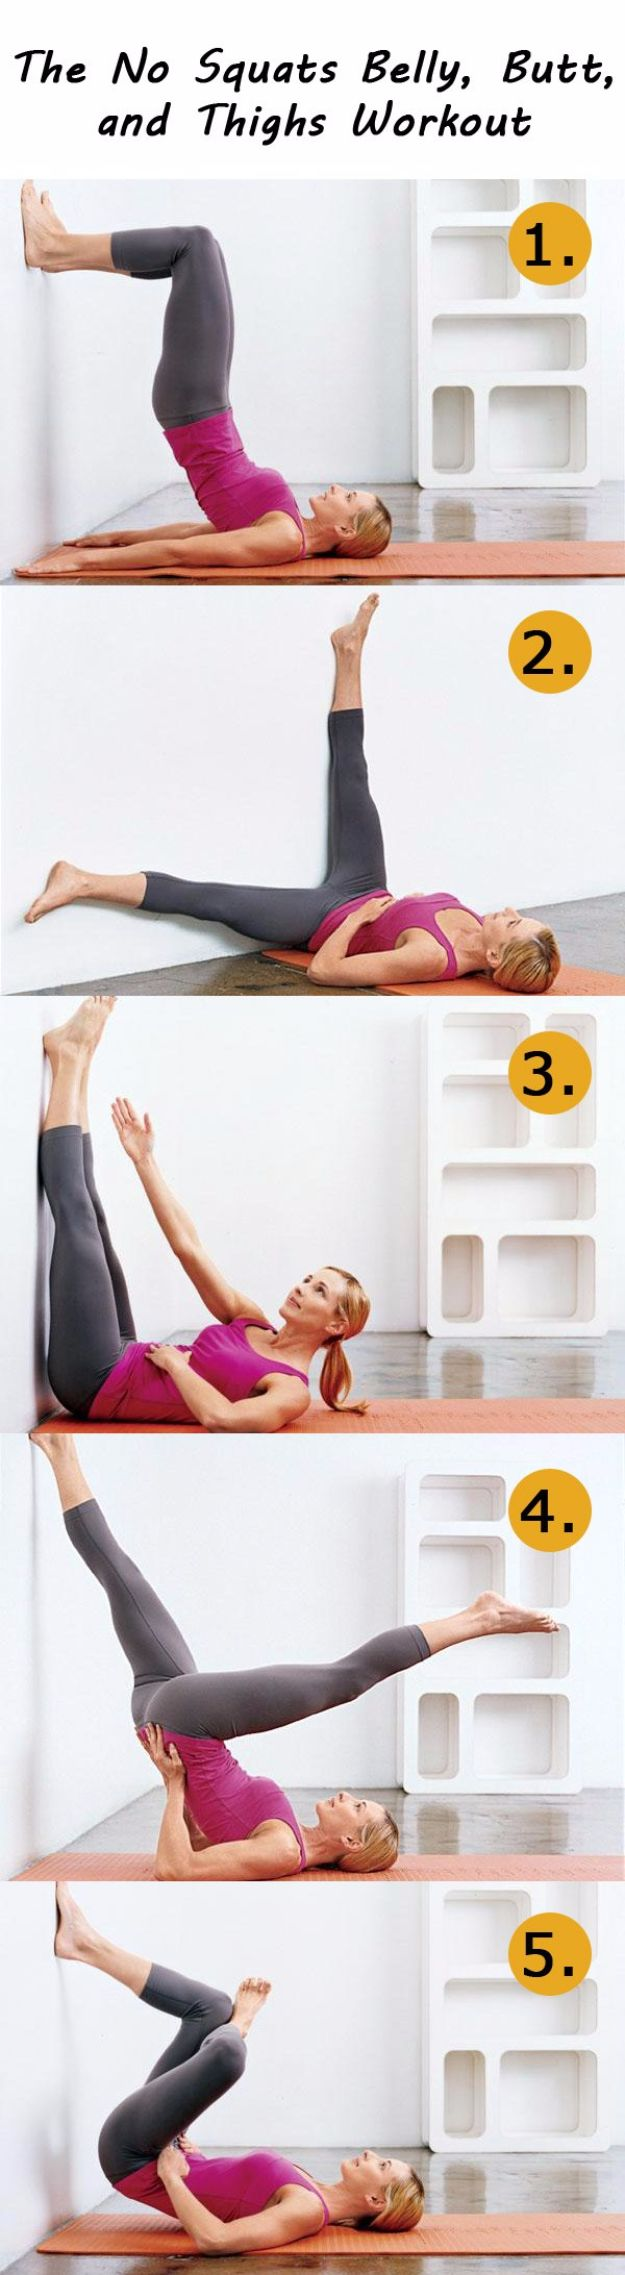 Best Quick At Home Workouts - No Squats Belly, Butt, and Thighs Workout - Easy Tutorials and Work Out Ideas for Strength Training and Exercises - Step by Step Tutorials for Butt Workouts, Abs Tummy and Stomach, Legs, Arms, Chest and Back - Fast 5 and 10 Minute Workouts You Can Do On Your Lunch Break, In Car, in Hotel #exercise #health